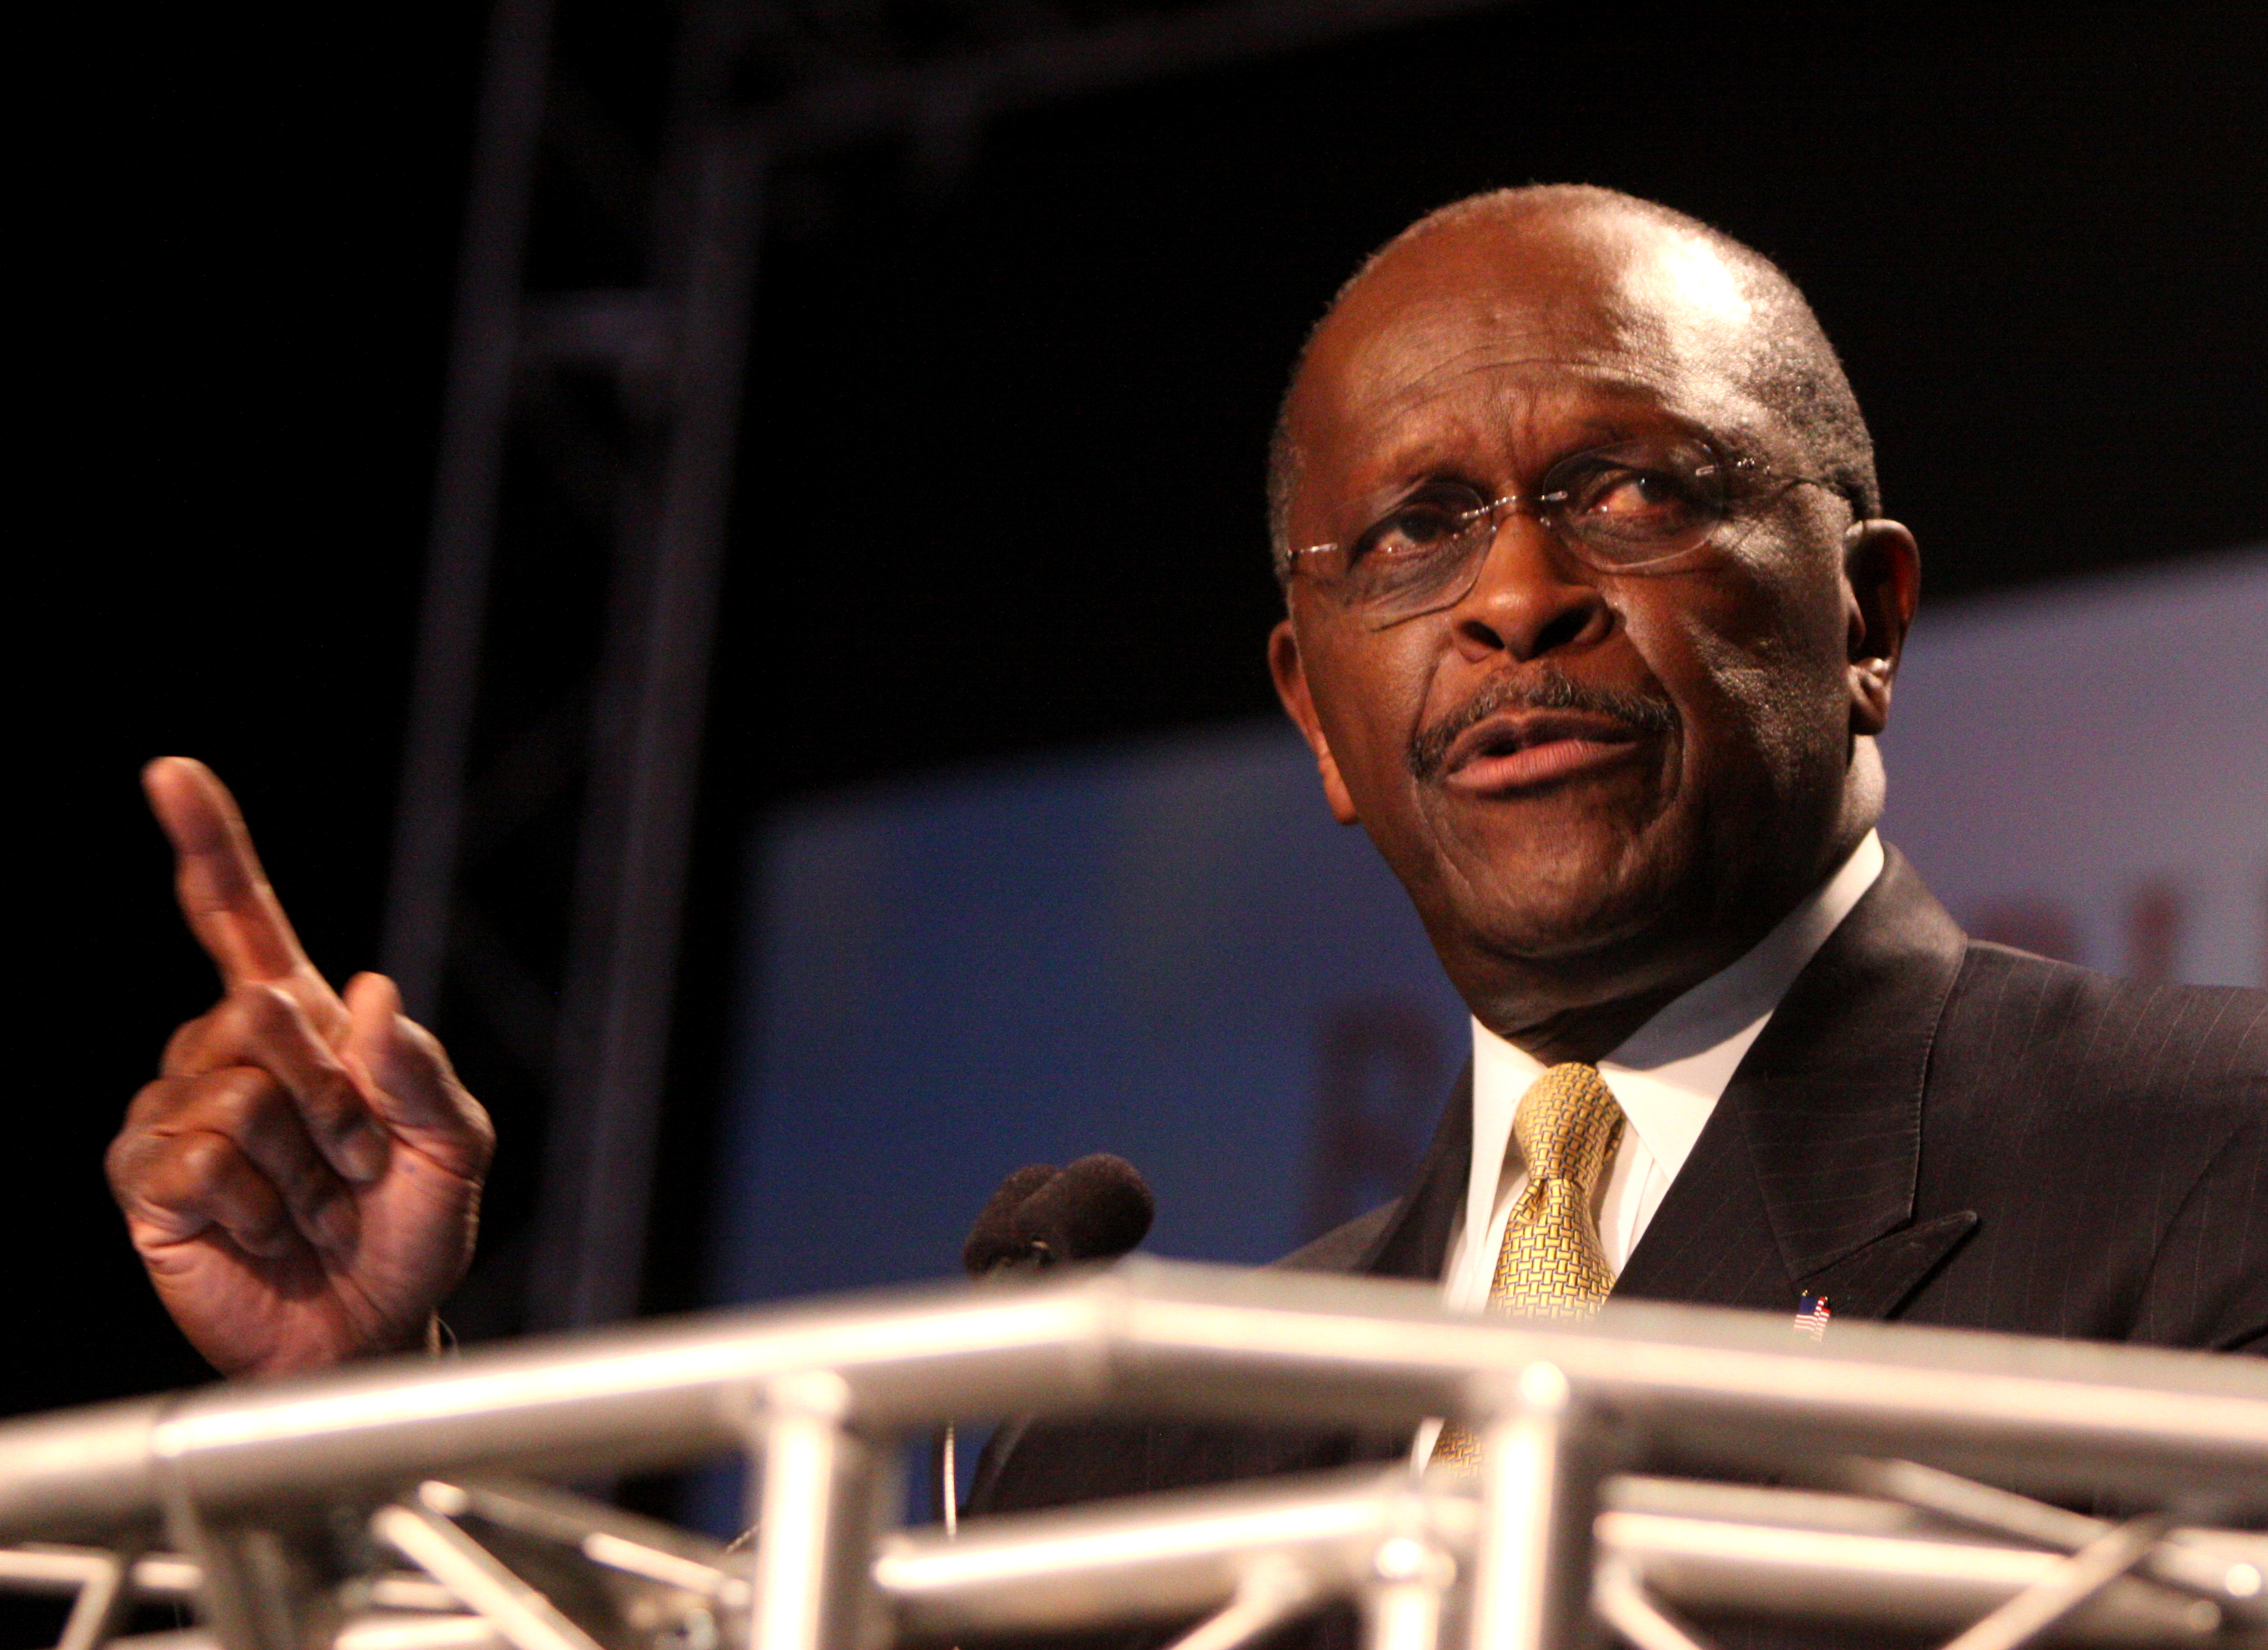 Herman_Cain_by_Gage_Skidmore_2.jpg